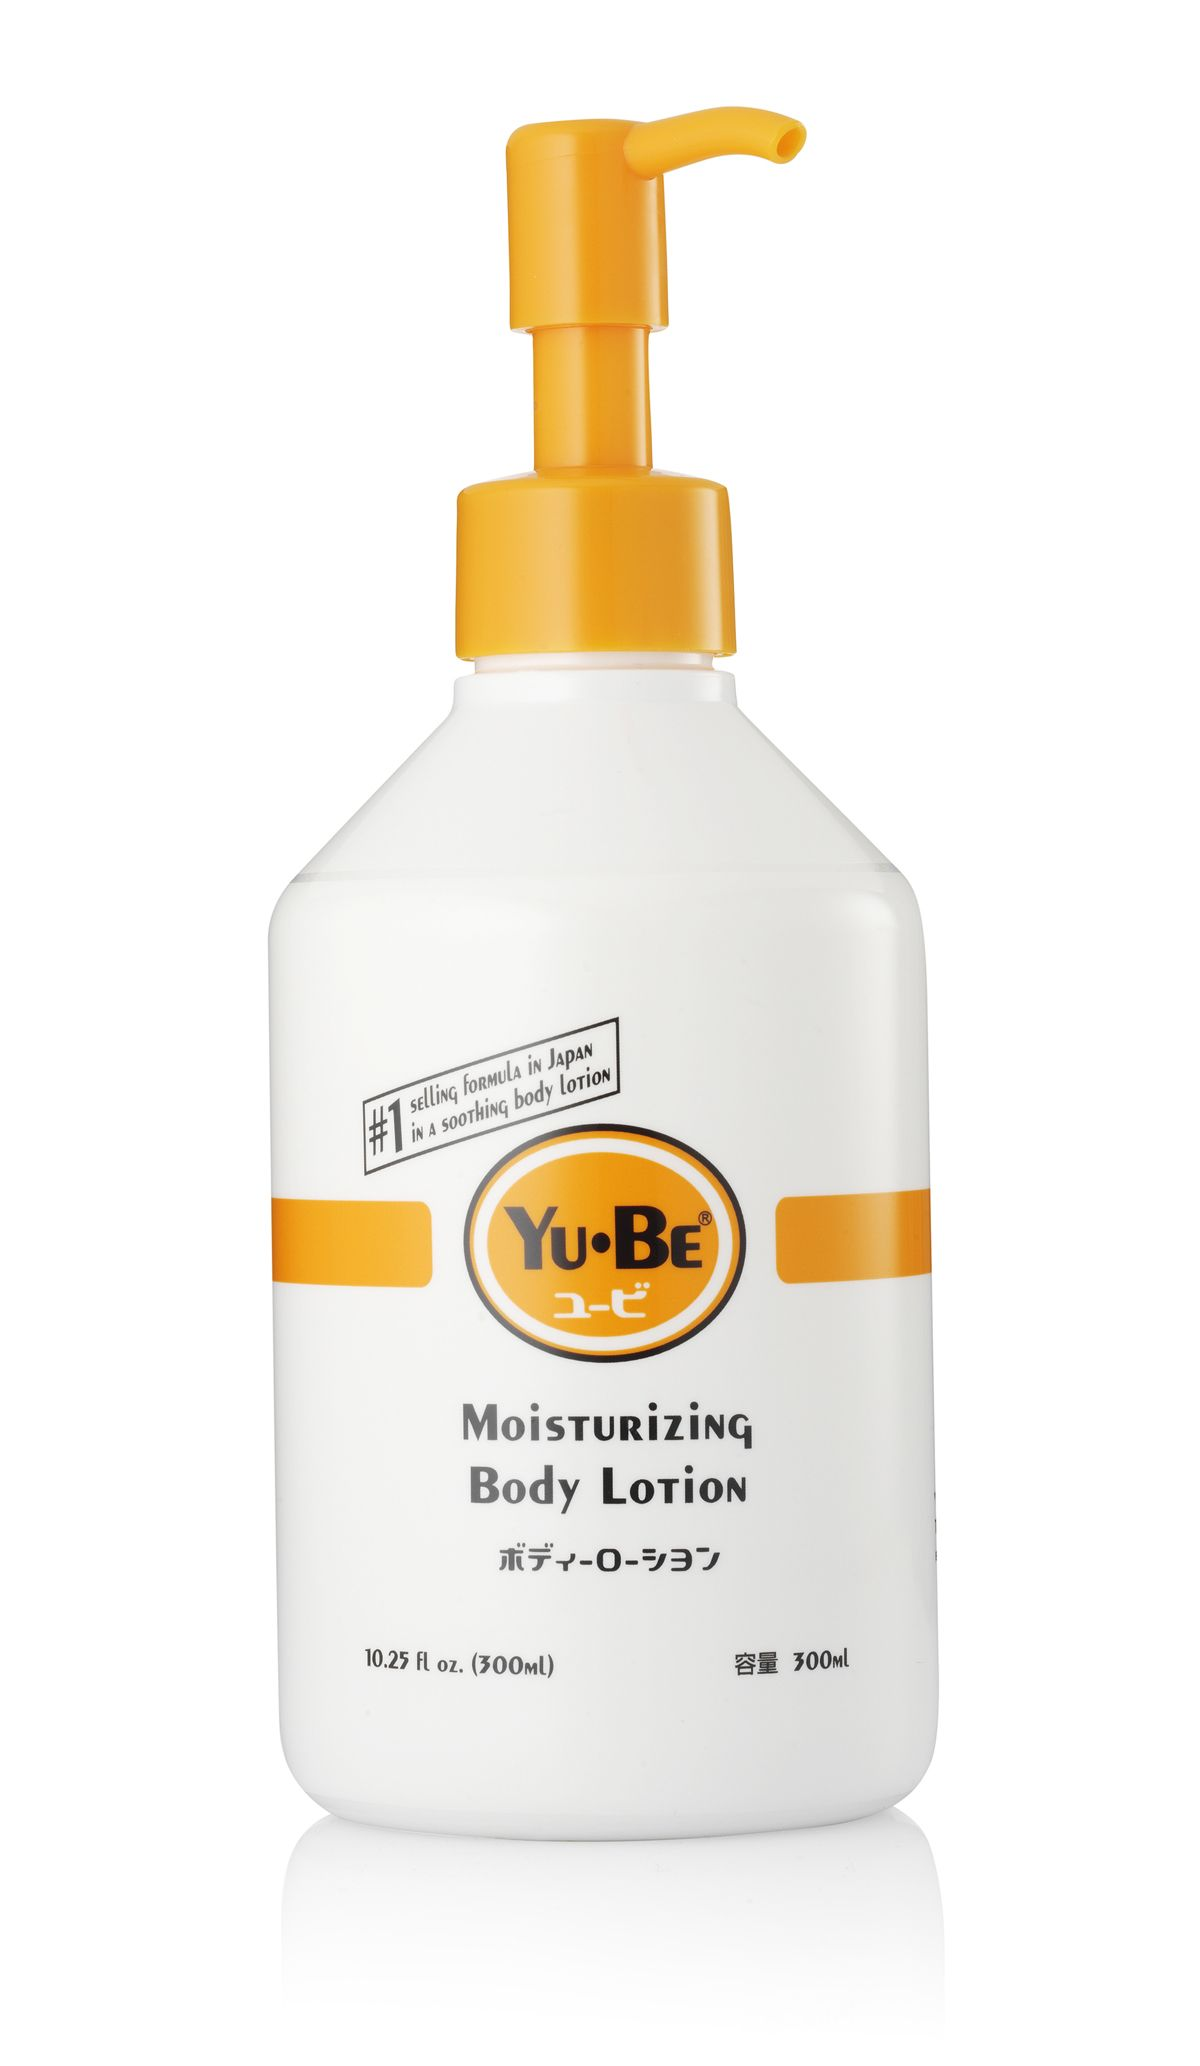 The Same Best Selling Japanese Formula From Yu Be Now In A Moisturizing Body Lotion Moisturizing Body Lotion Moisturizing Body Cream Moisturizing Skin Cream